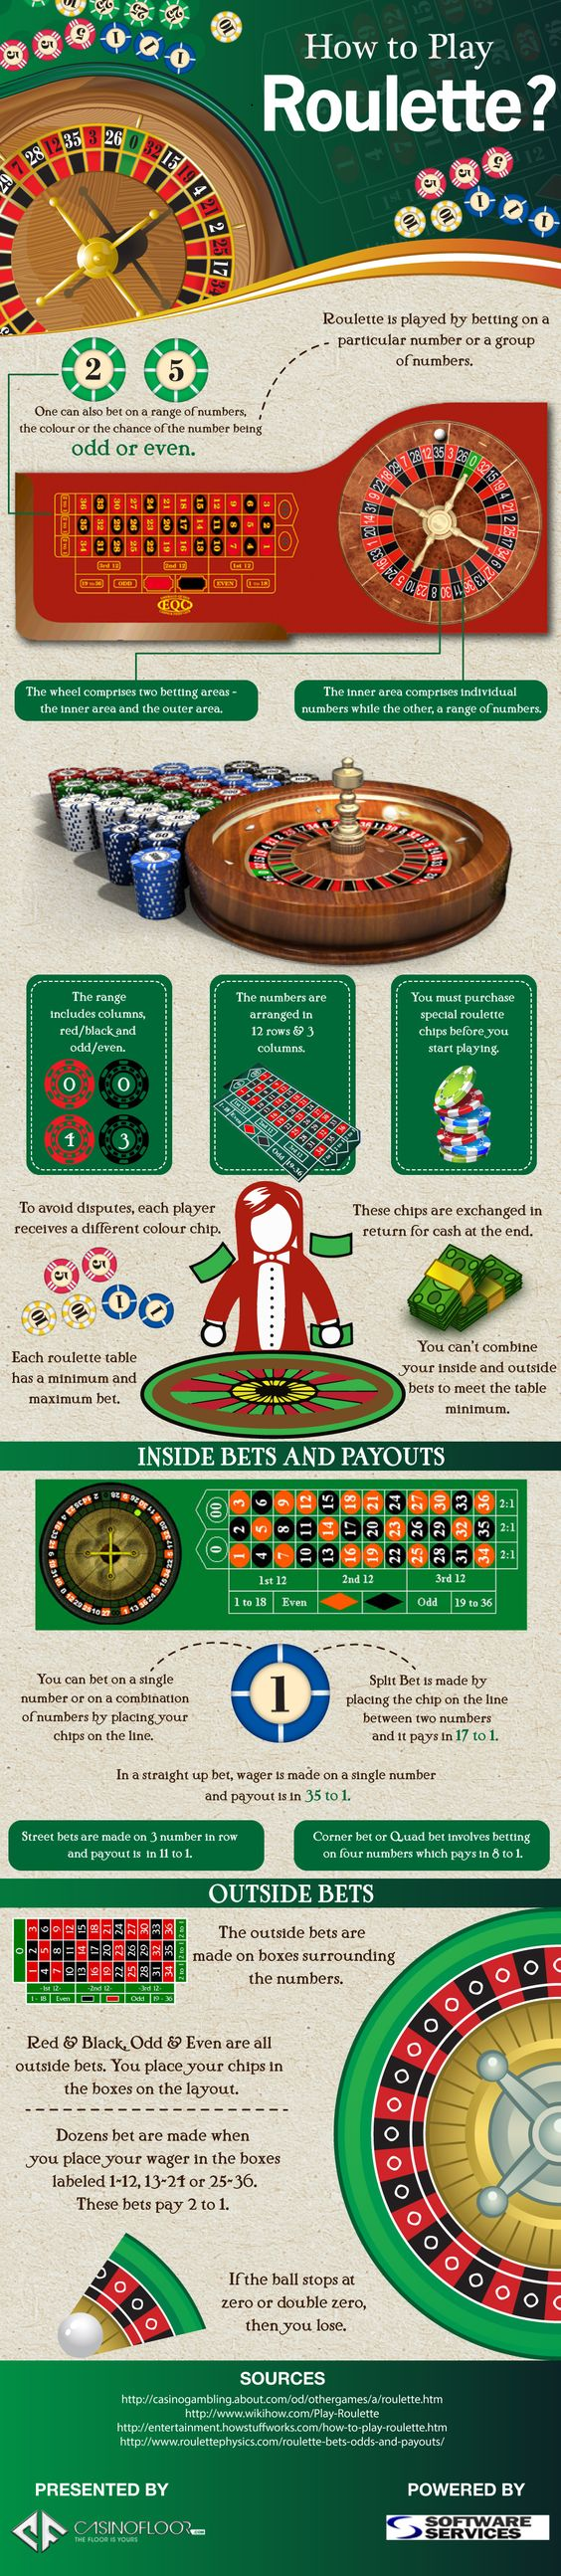 online slot machine play roulette now